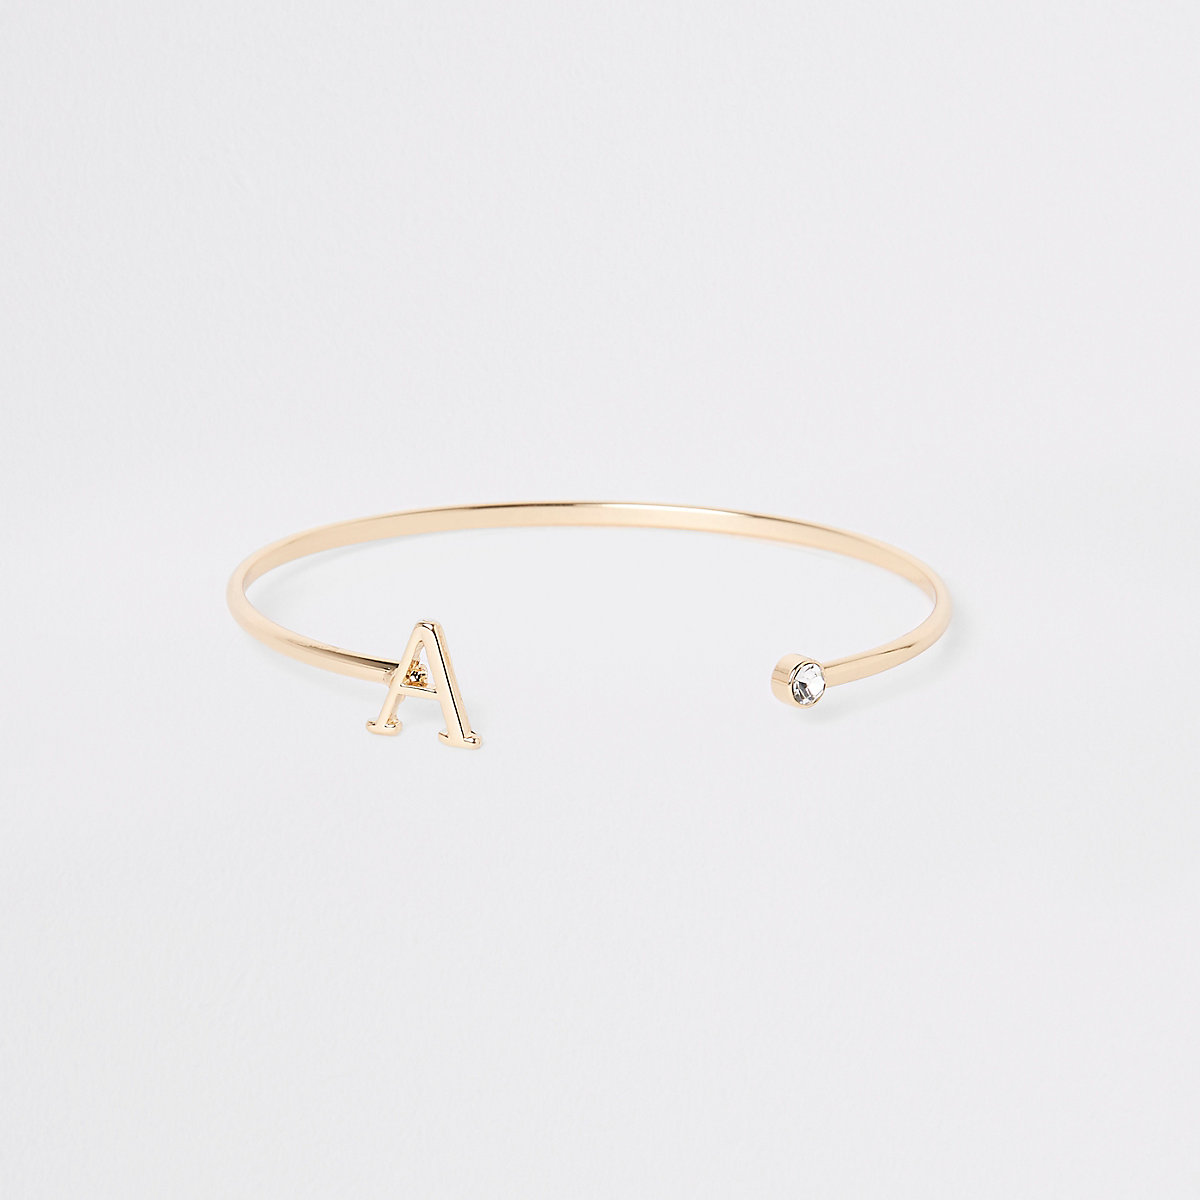 Gold plated 'A' initial cuff bracelet